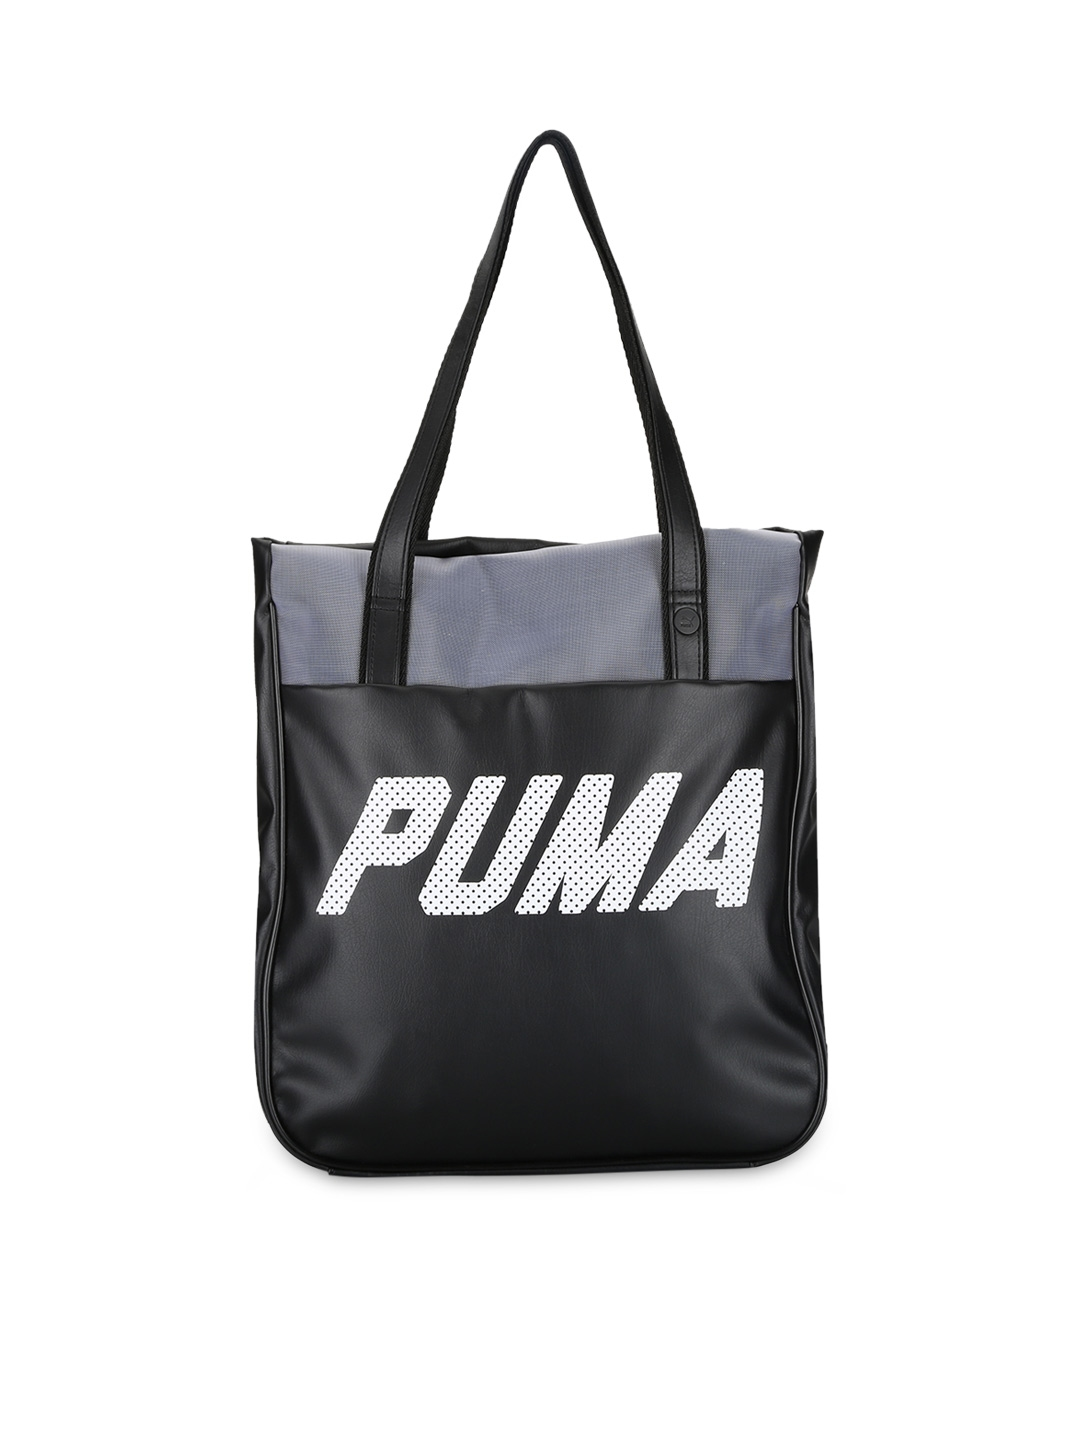 2ae760564ef6 Buy PUMA Black Printed Tote Bag - Handbags for Women 1728699